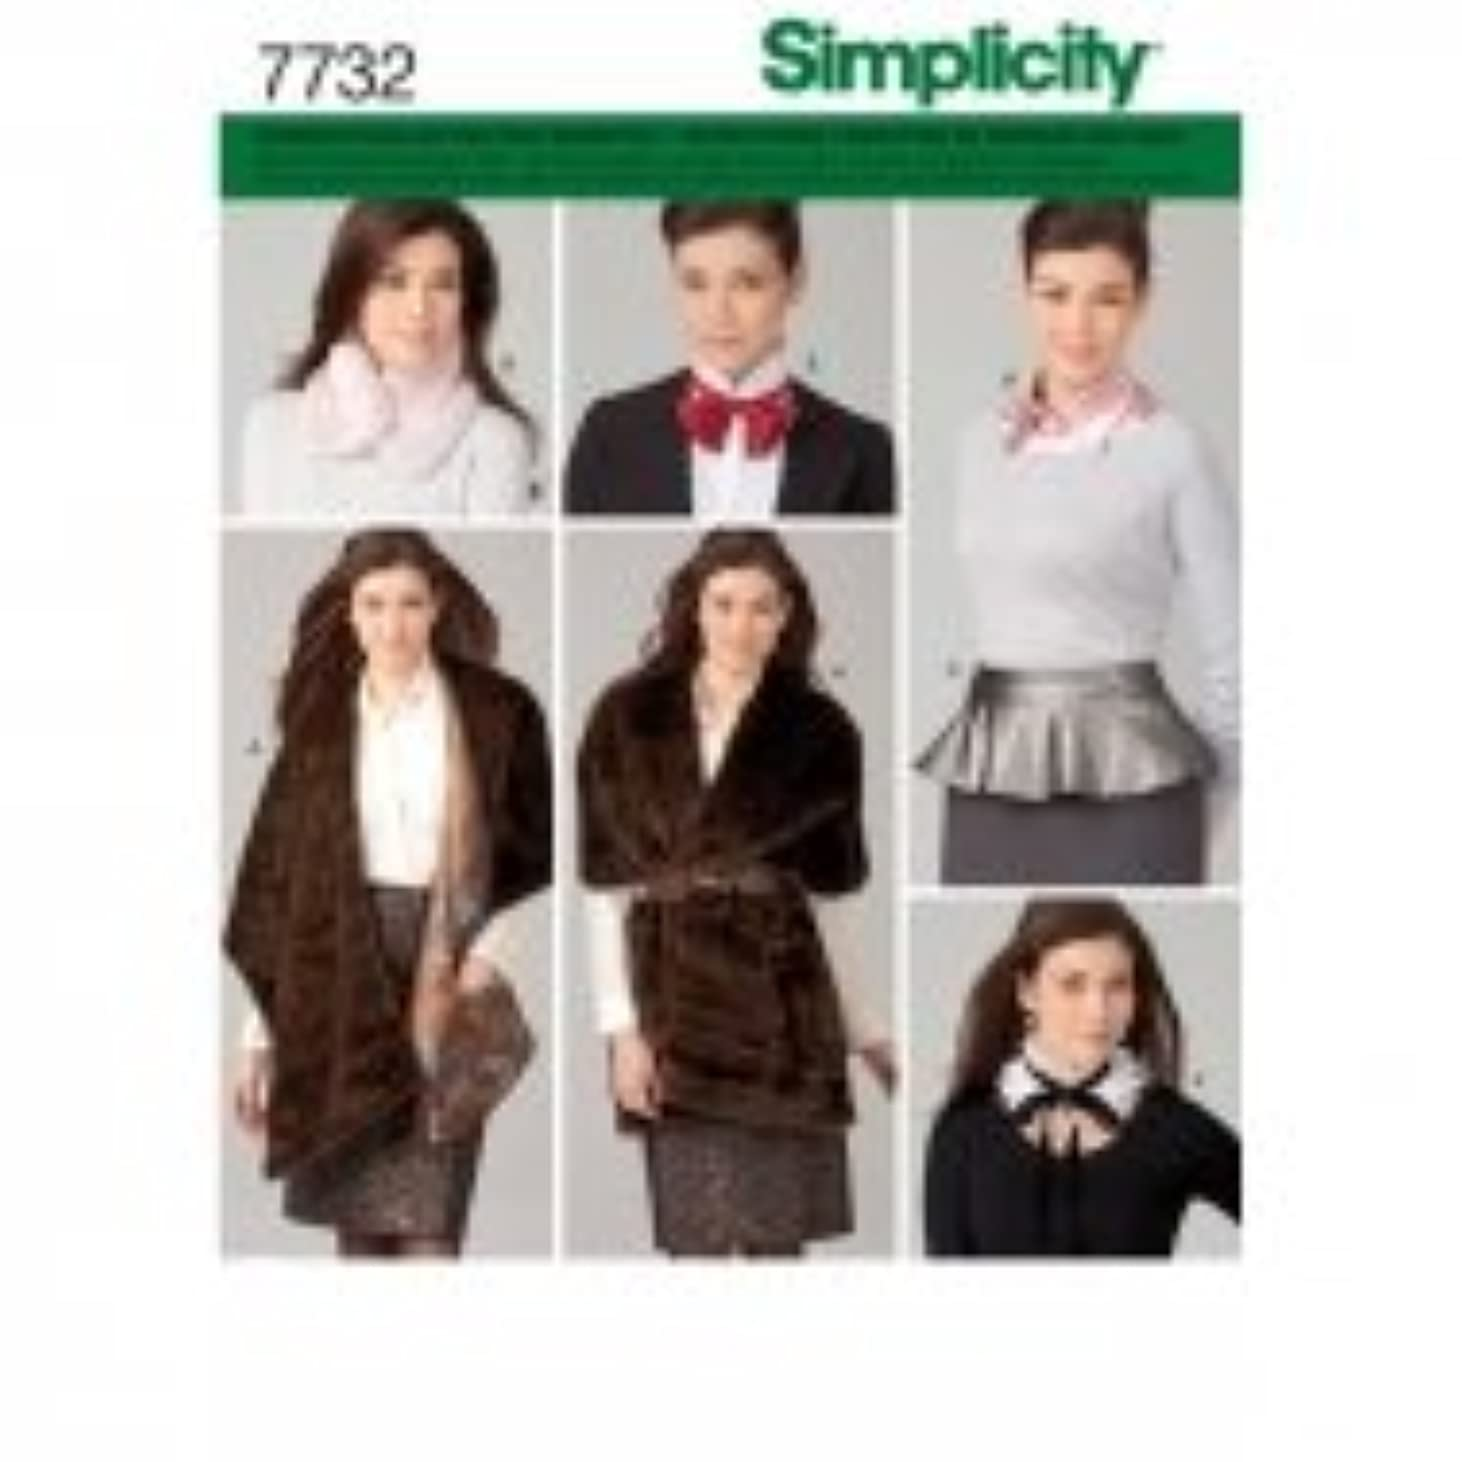 Simplicity Pattern 7732, A Accessories gxyhf527406